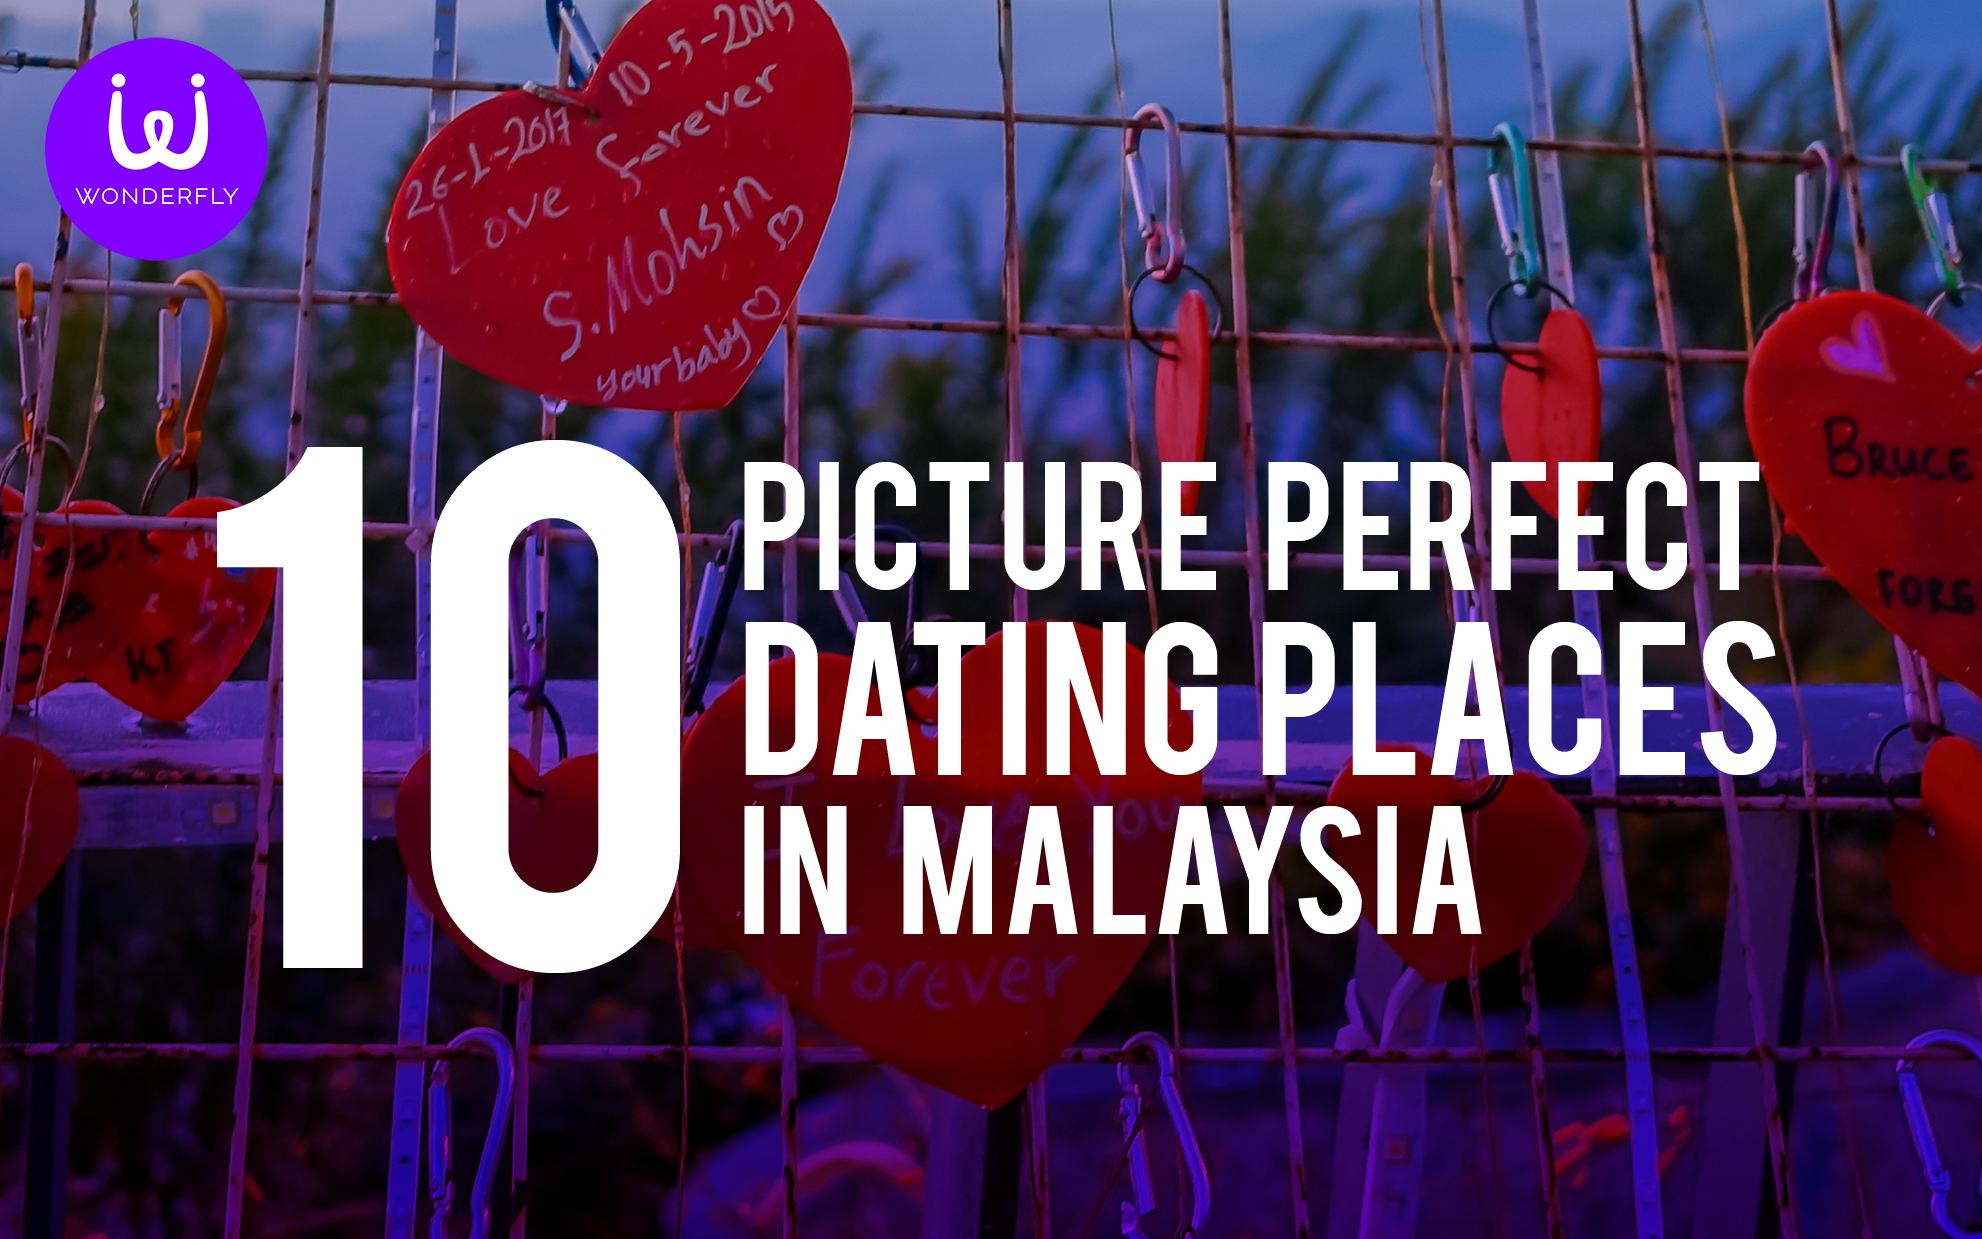 10 Picture Perfect Dating Places in Malaysia